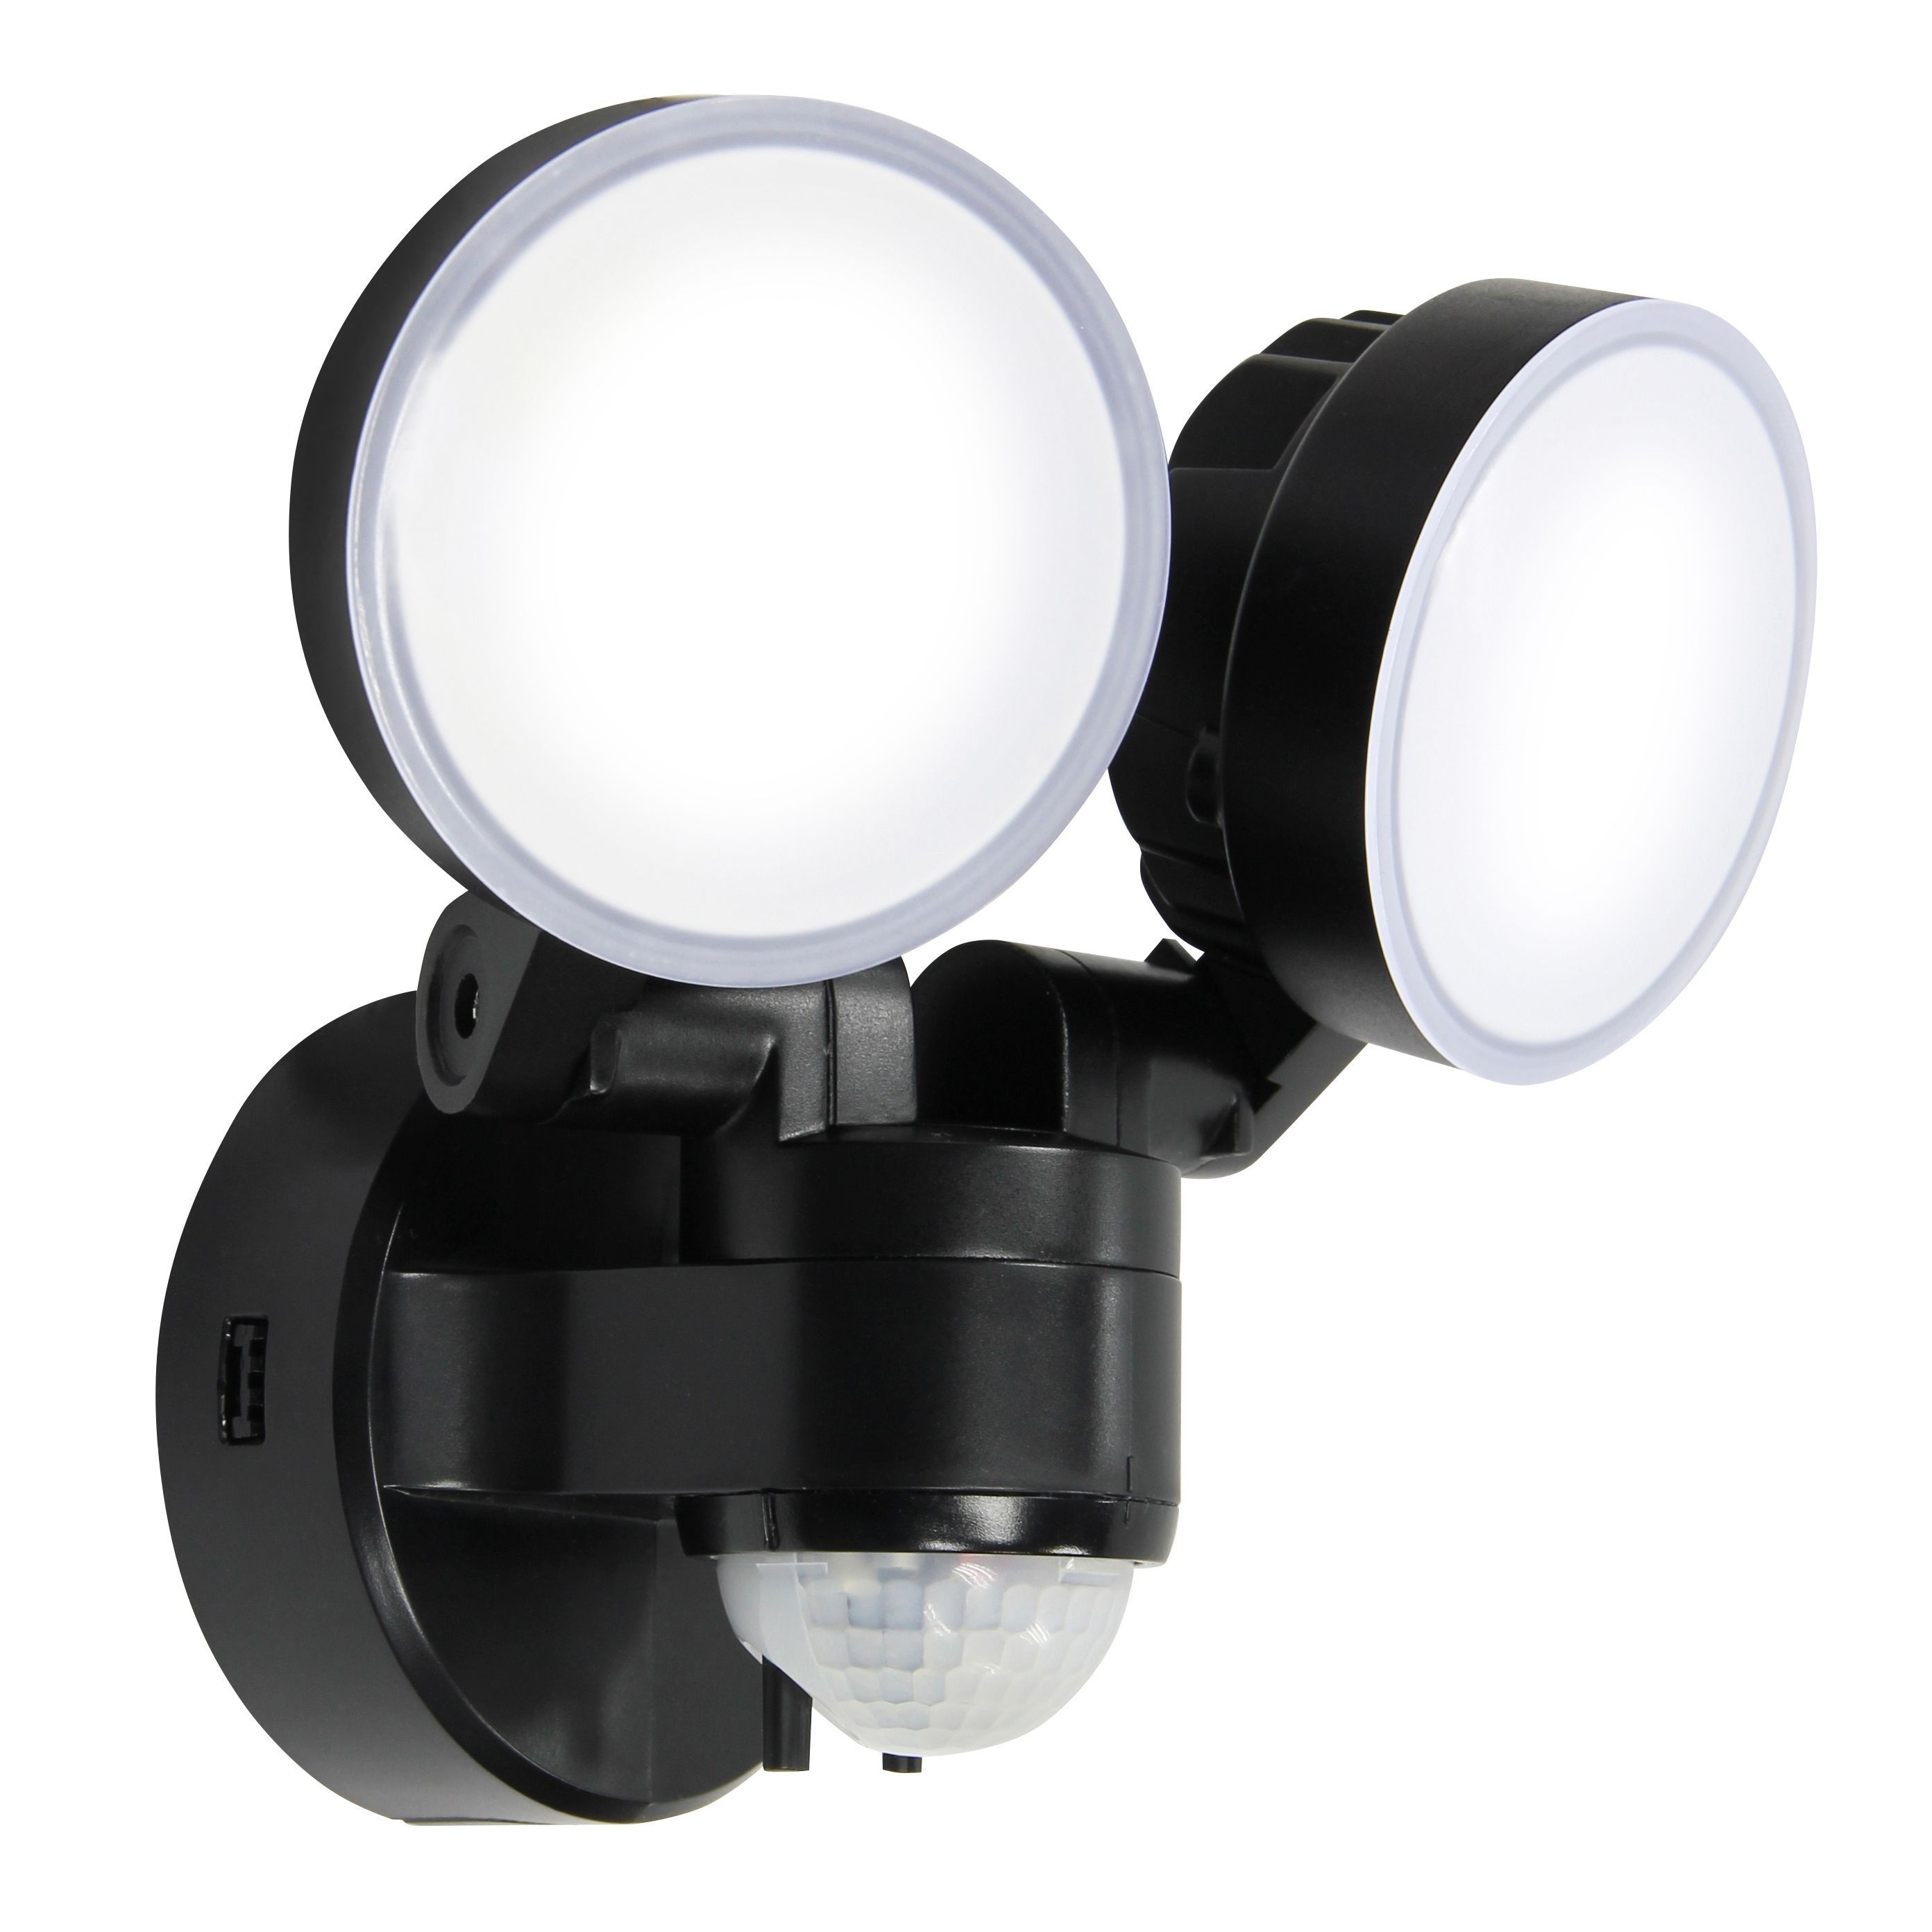 Blooma Stata 16w Mains Ed Twin Security Light